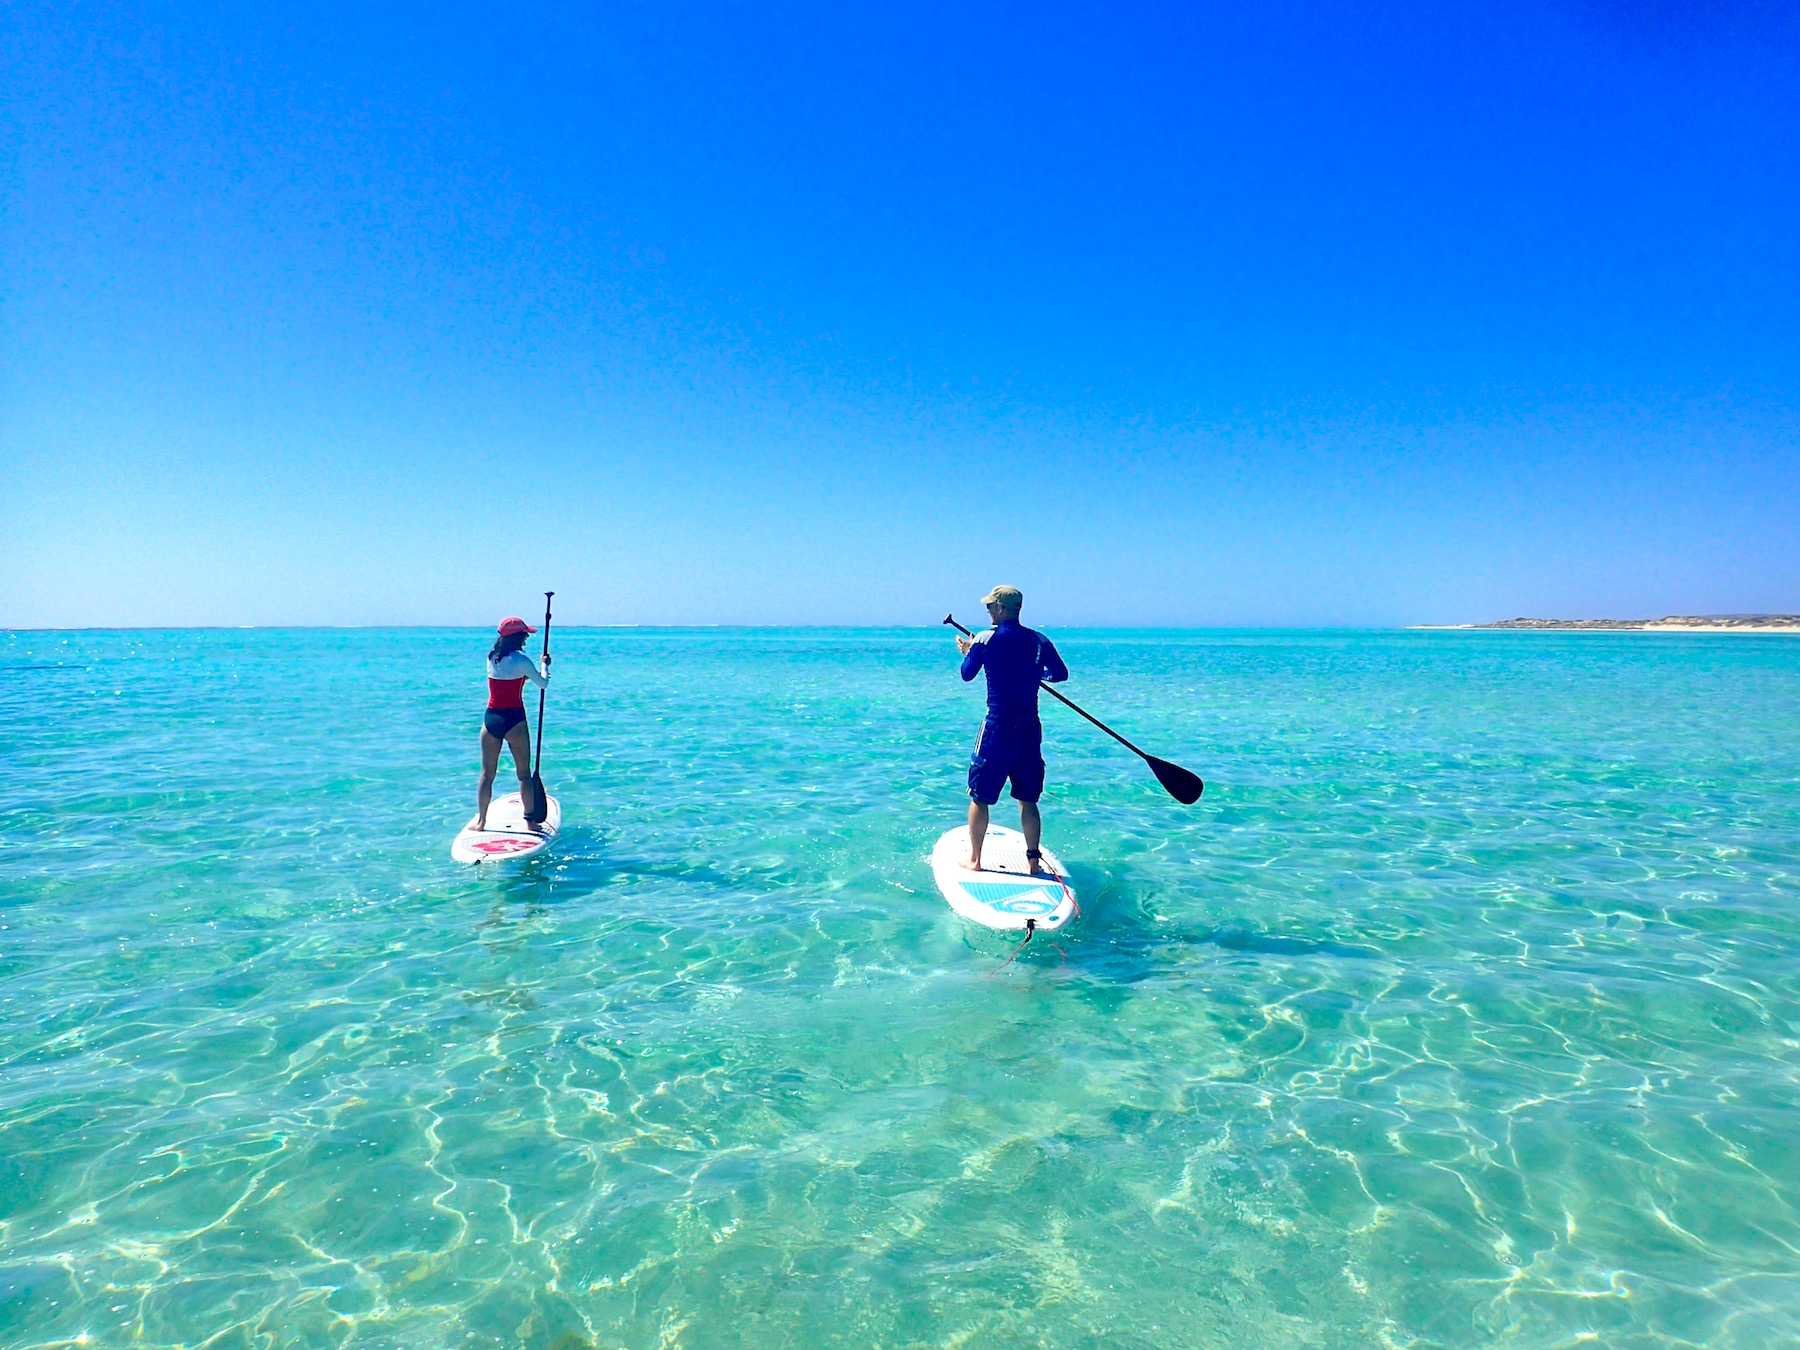 SUP Hire, SUP rental, Stand up paddle hire, stand up paddle rental, exmouth, western australia, sup hire exmouth, sup hire ningaloo, ningaloo reef